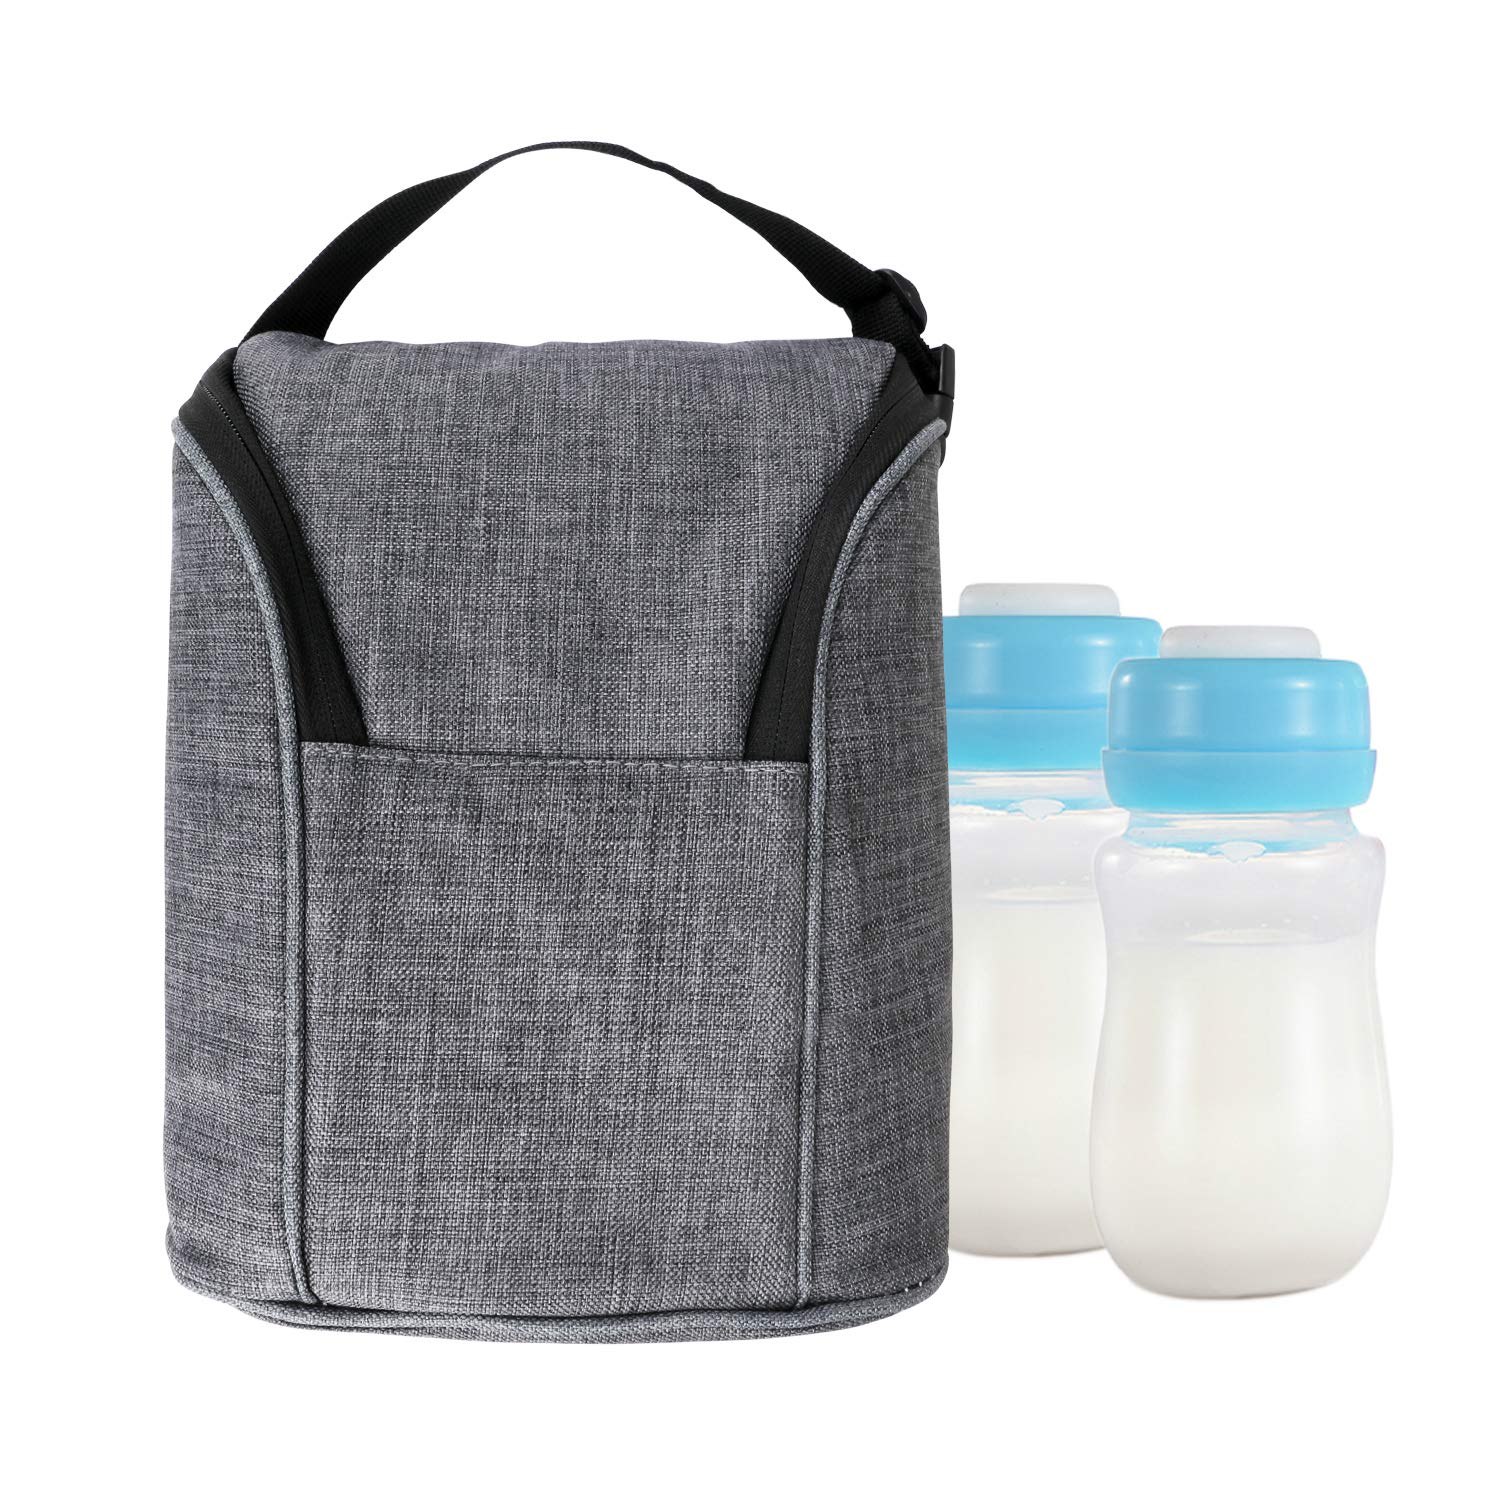 Amariver Grey Insulated Baby Bottle Tote Bags, Fashion Oxford Ice Pack Multi-Function Lunch Picnic Bag for Travel